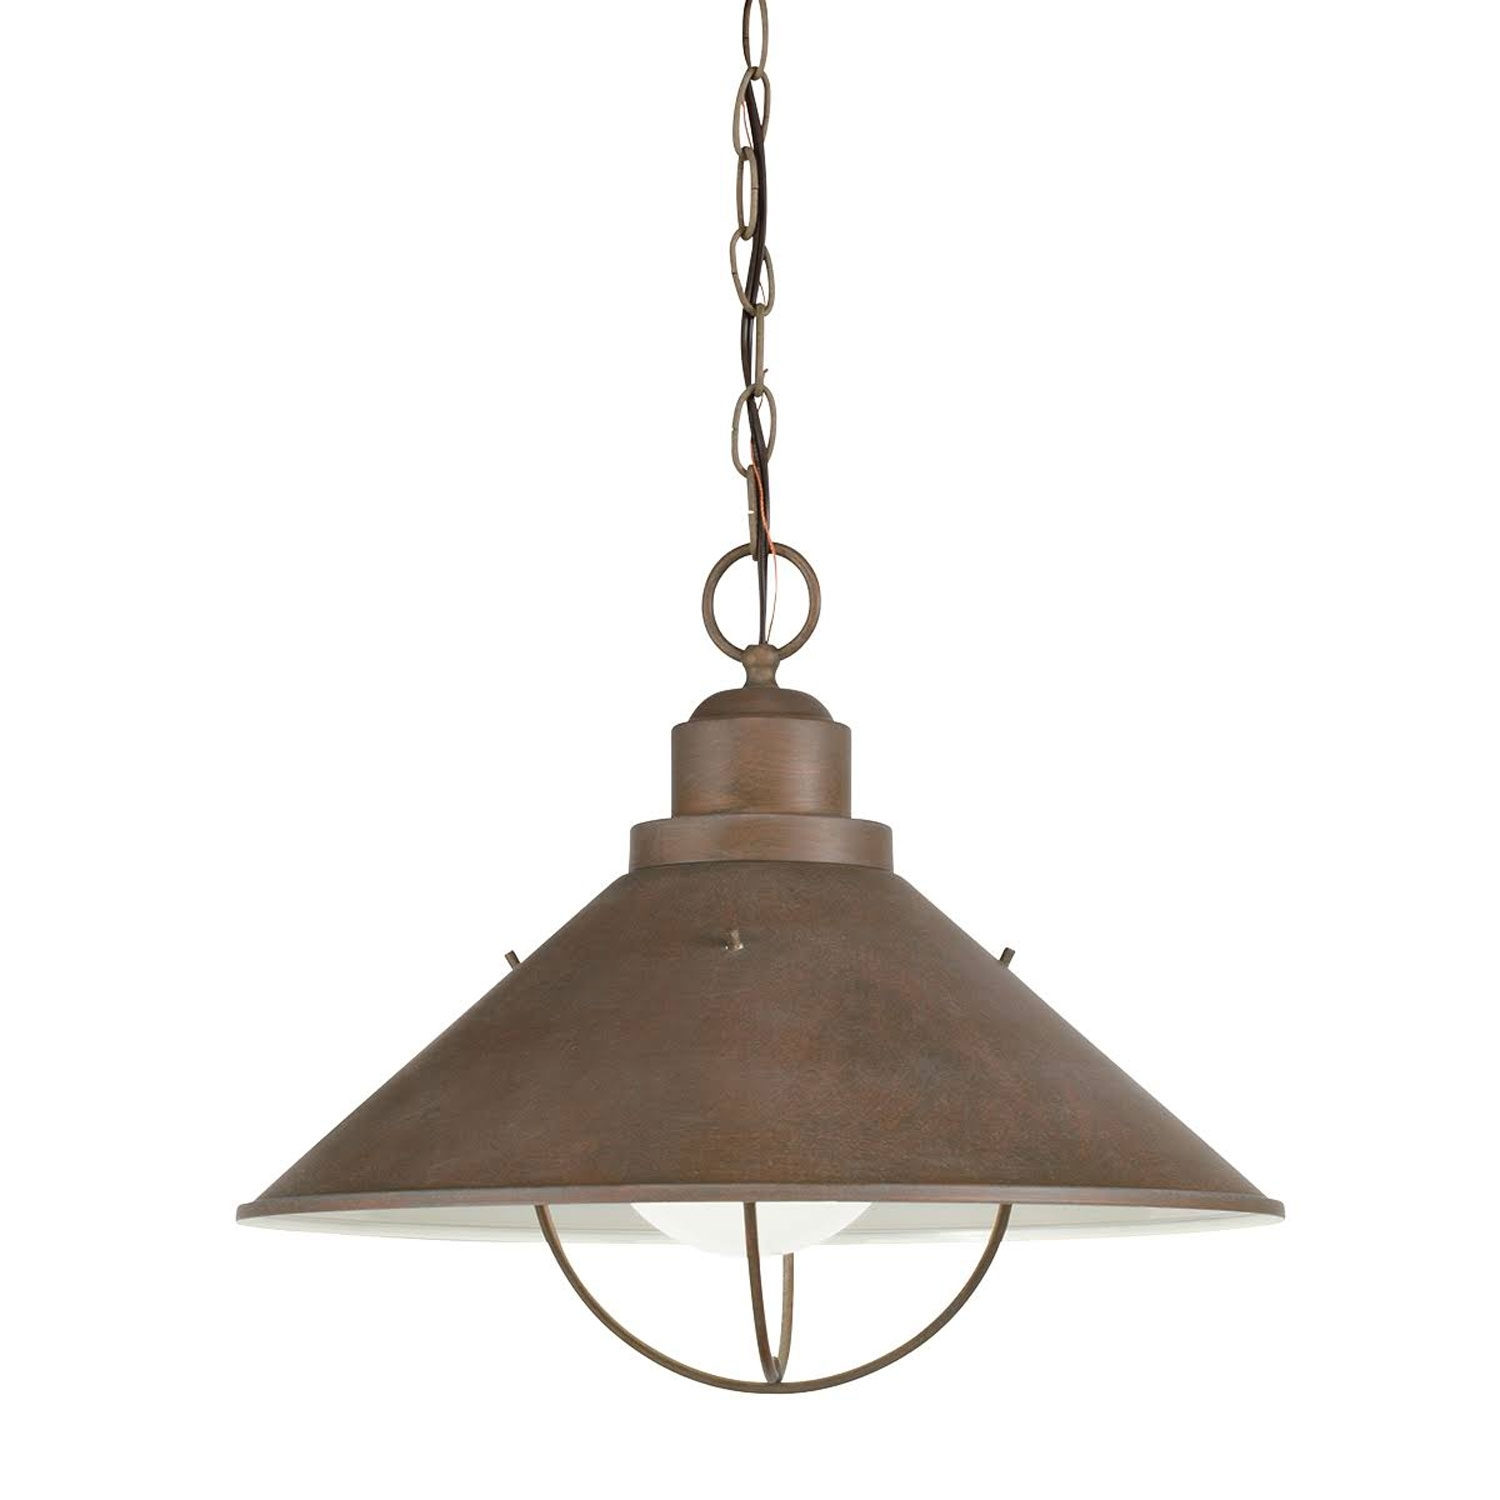 Seaside Nautical Dome Light Kichler Outdoor Pendants Outdoor Hanging In Nautical Outdoor Hanging Lights (View 7 of 15)